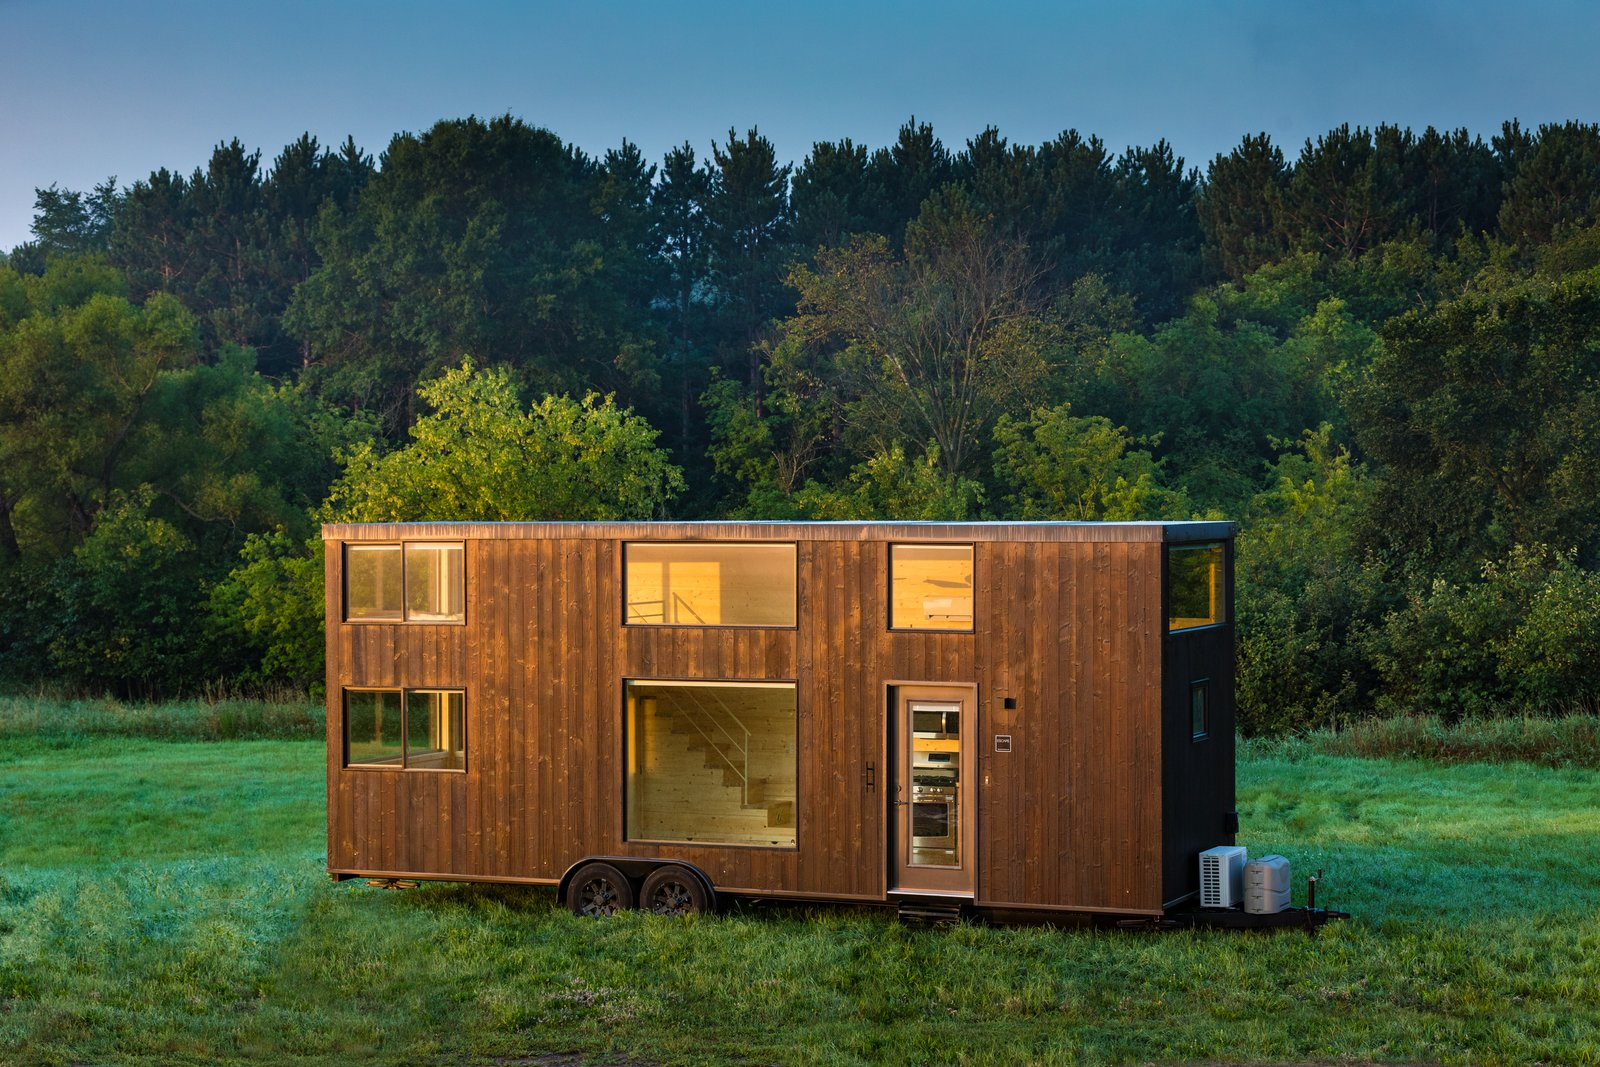 7 Companies Building Tiny Homes That Fit the Whole Family